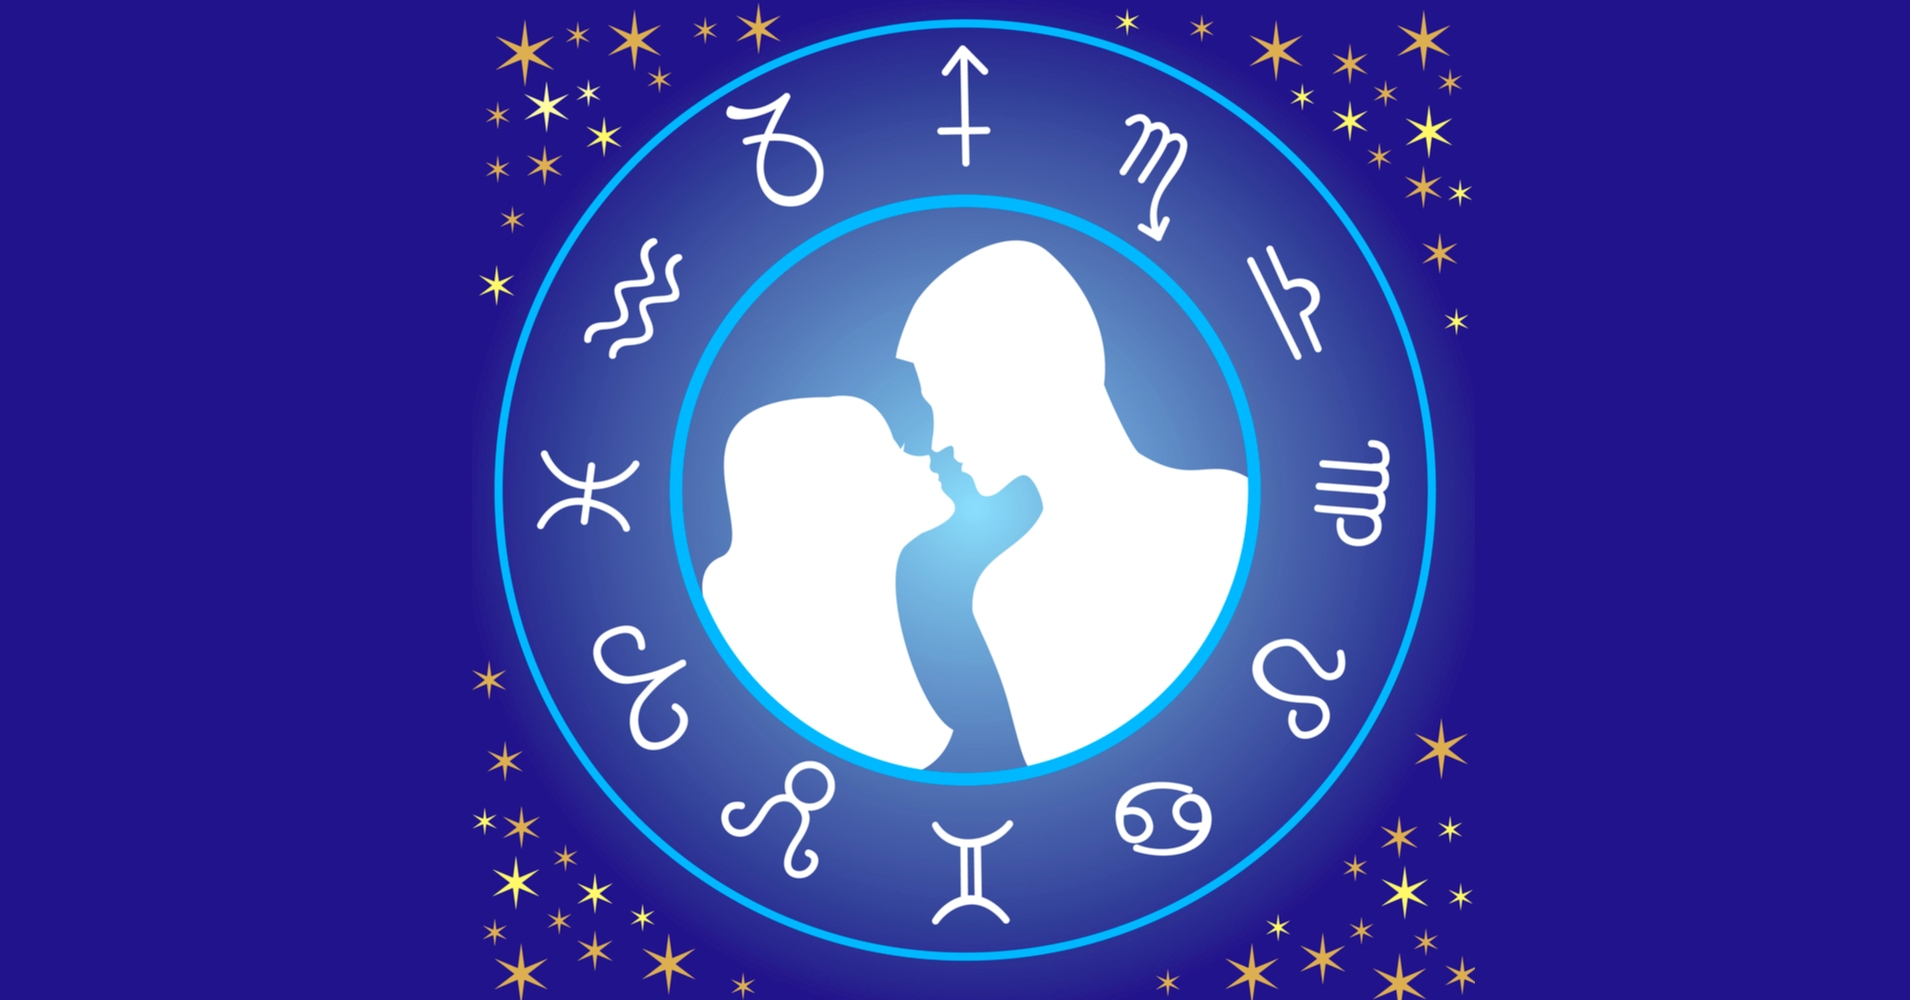 Virgo compatibility compatible astrology